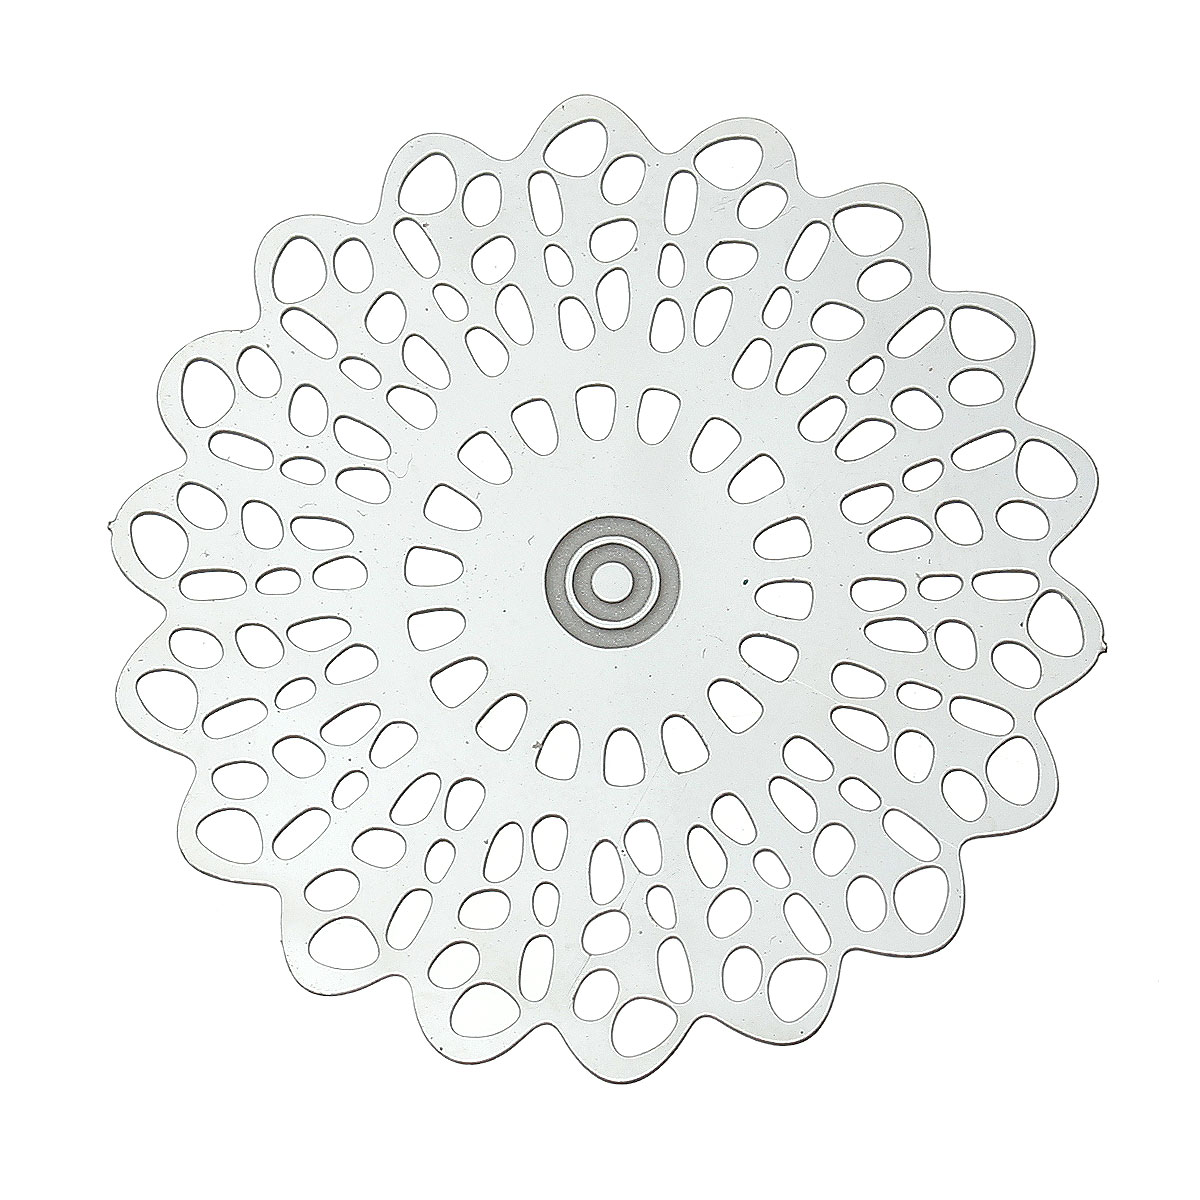 DoreenBeads Stainless Steel Embellishments Findings Flower Silver Tone Hollow 35mm(1 3/8)x 34mm(1 3/8),20 PCs 2015 new